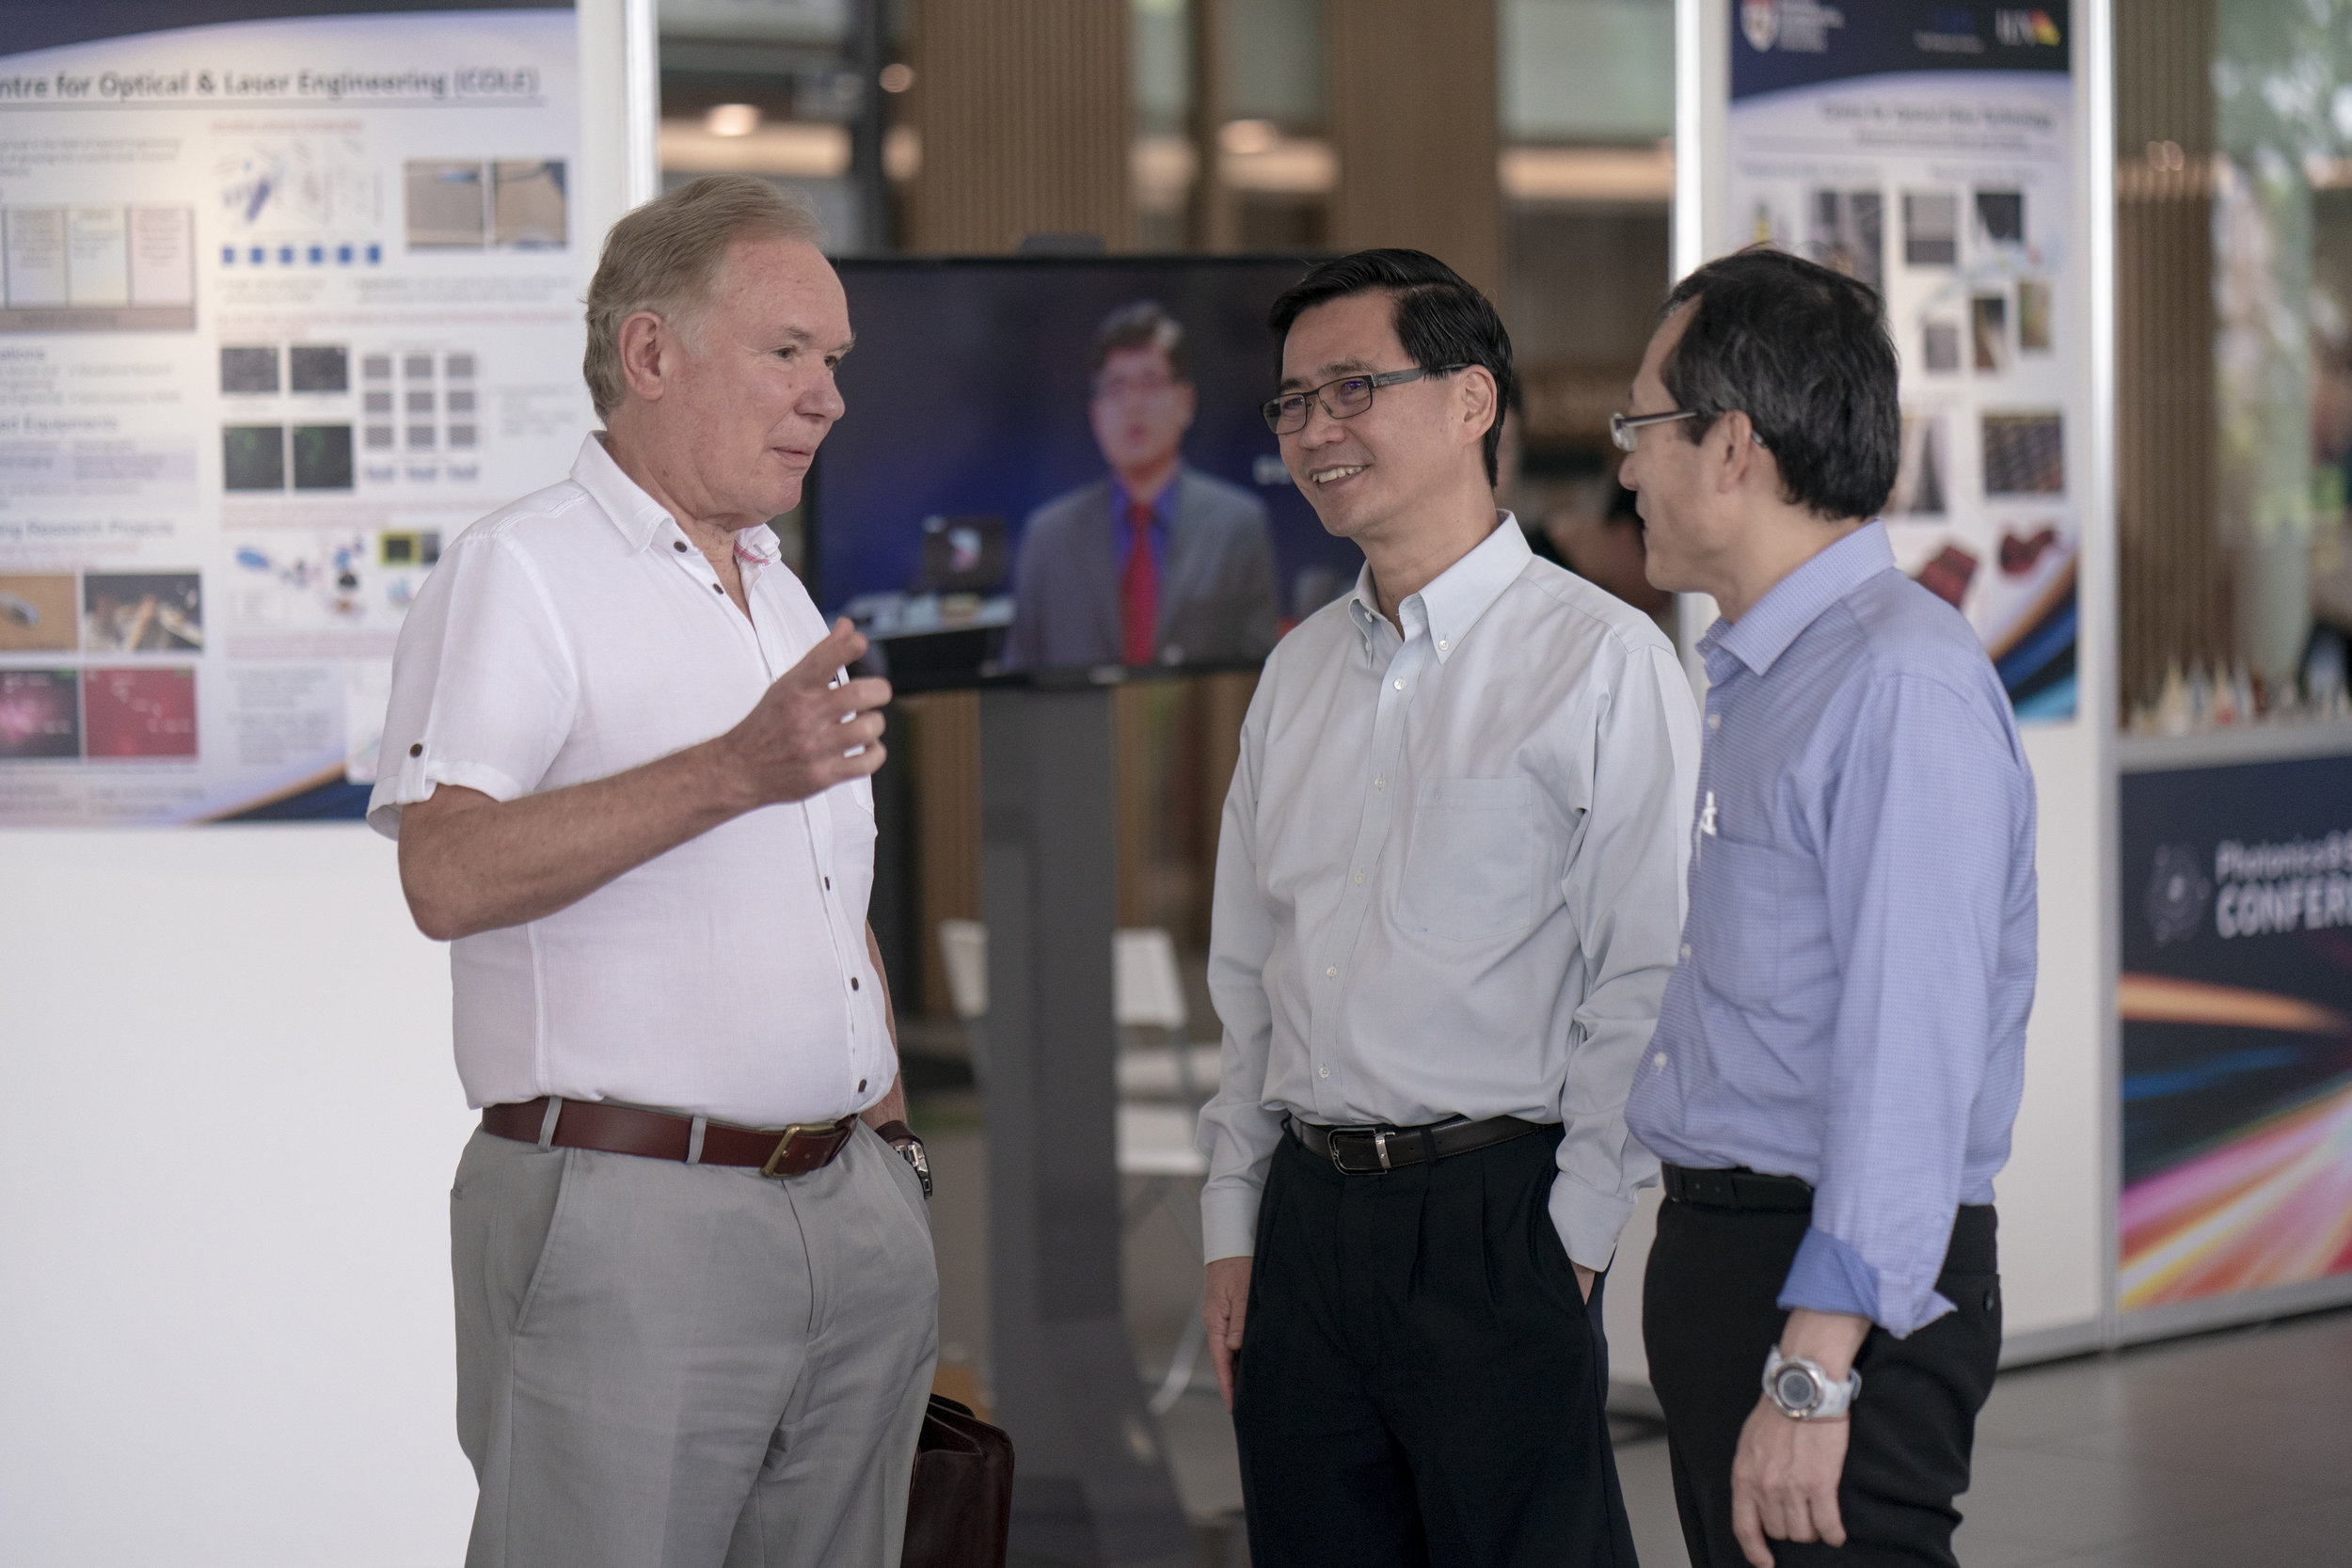 TPI Photonics SG 2018 Conference n Exhibition 0306rc.jpg